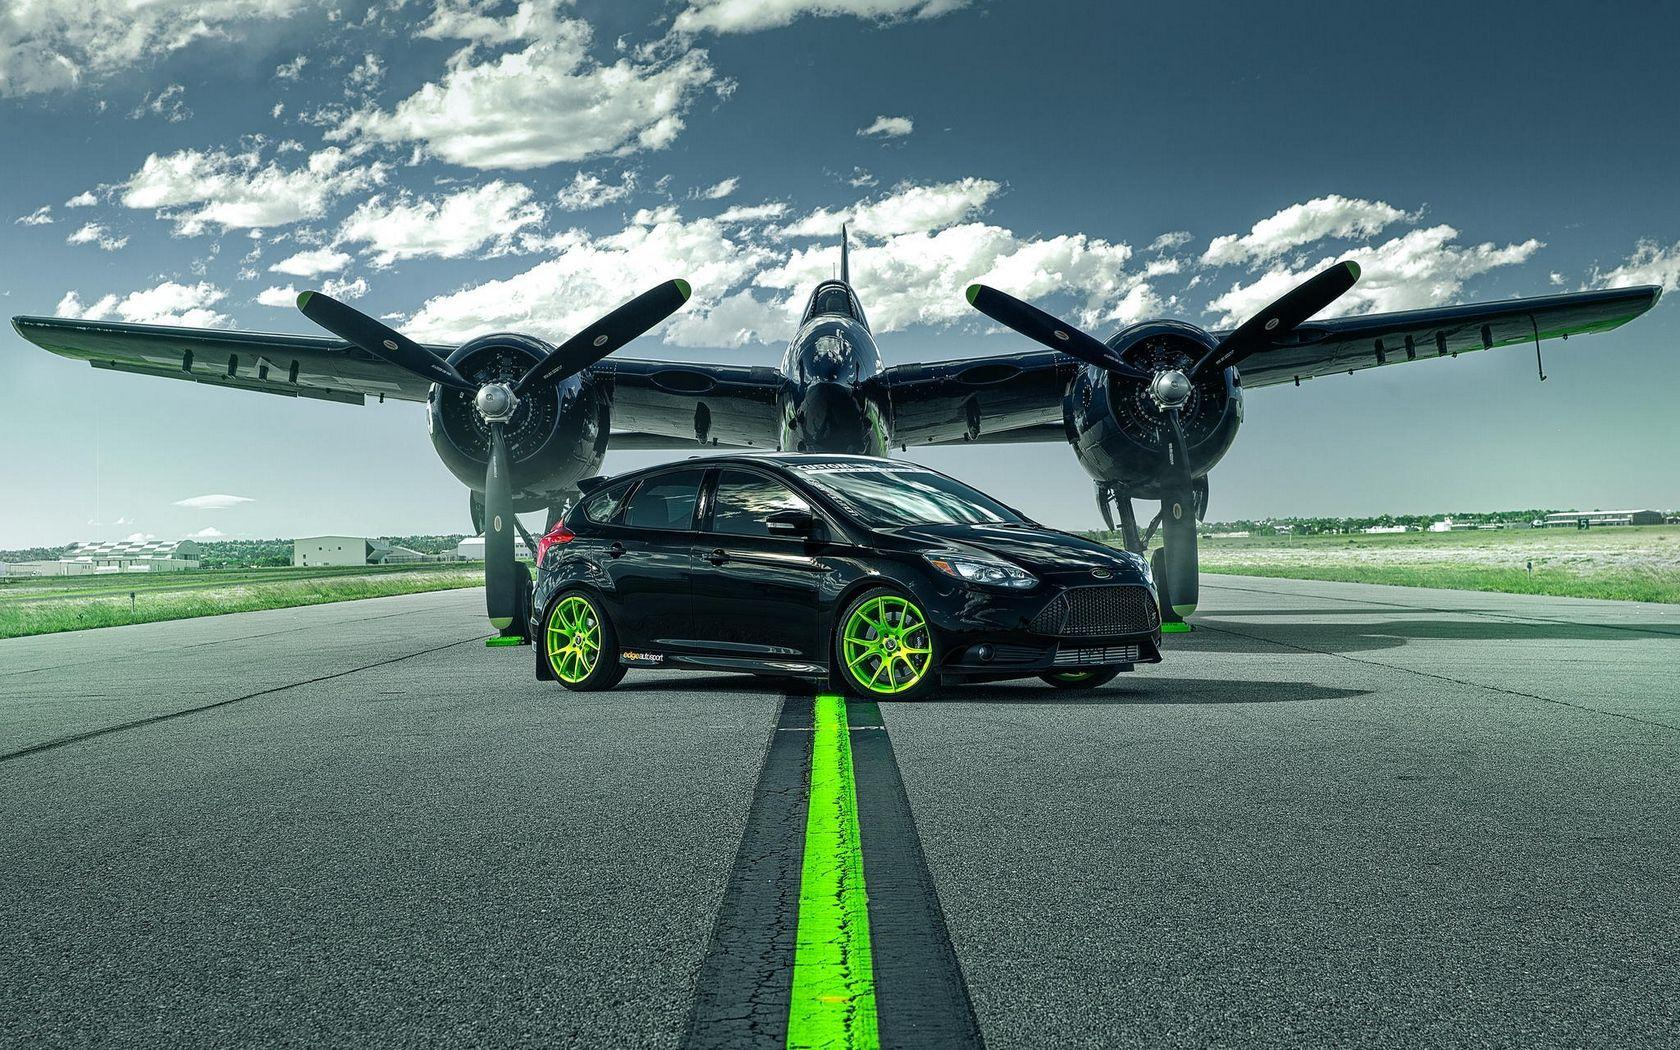 Download wallpapers 1680x1050 ford focus, st, ford, plane, runway